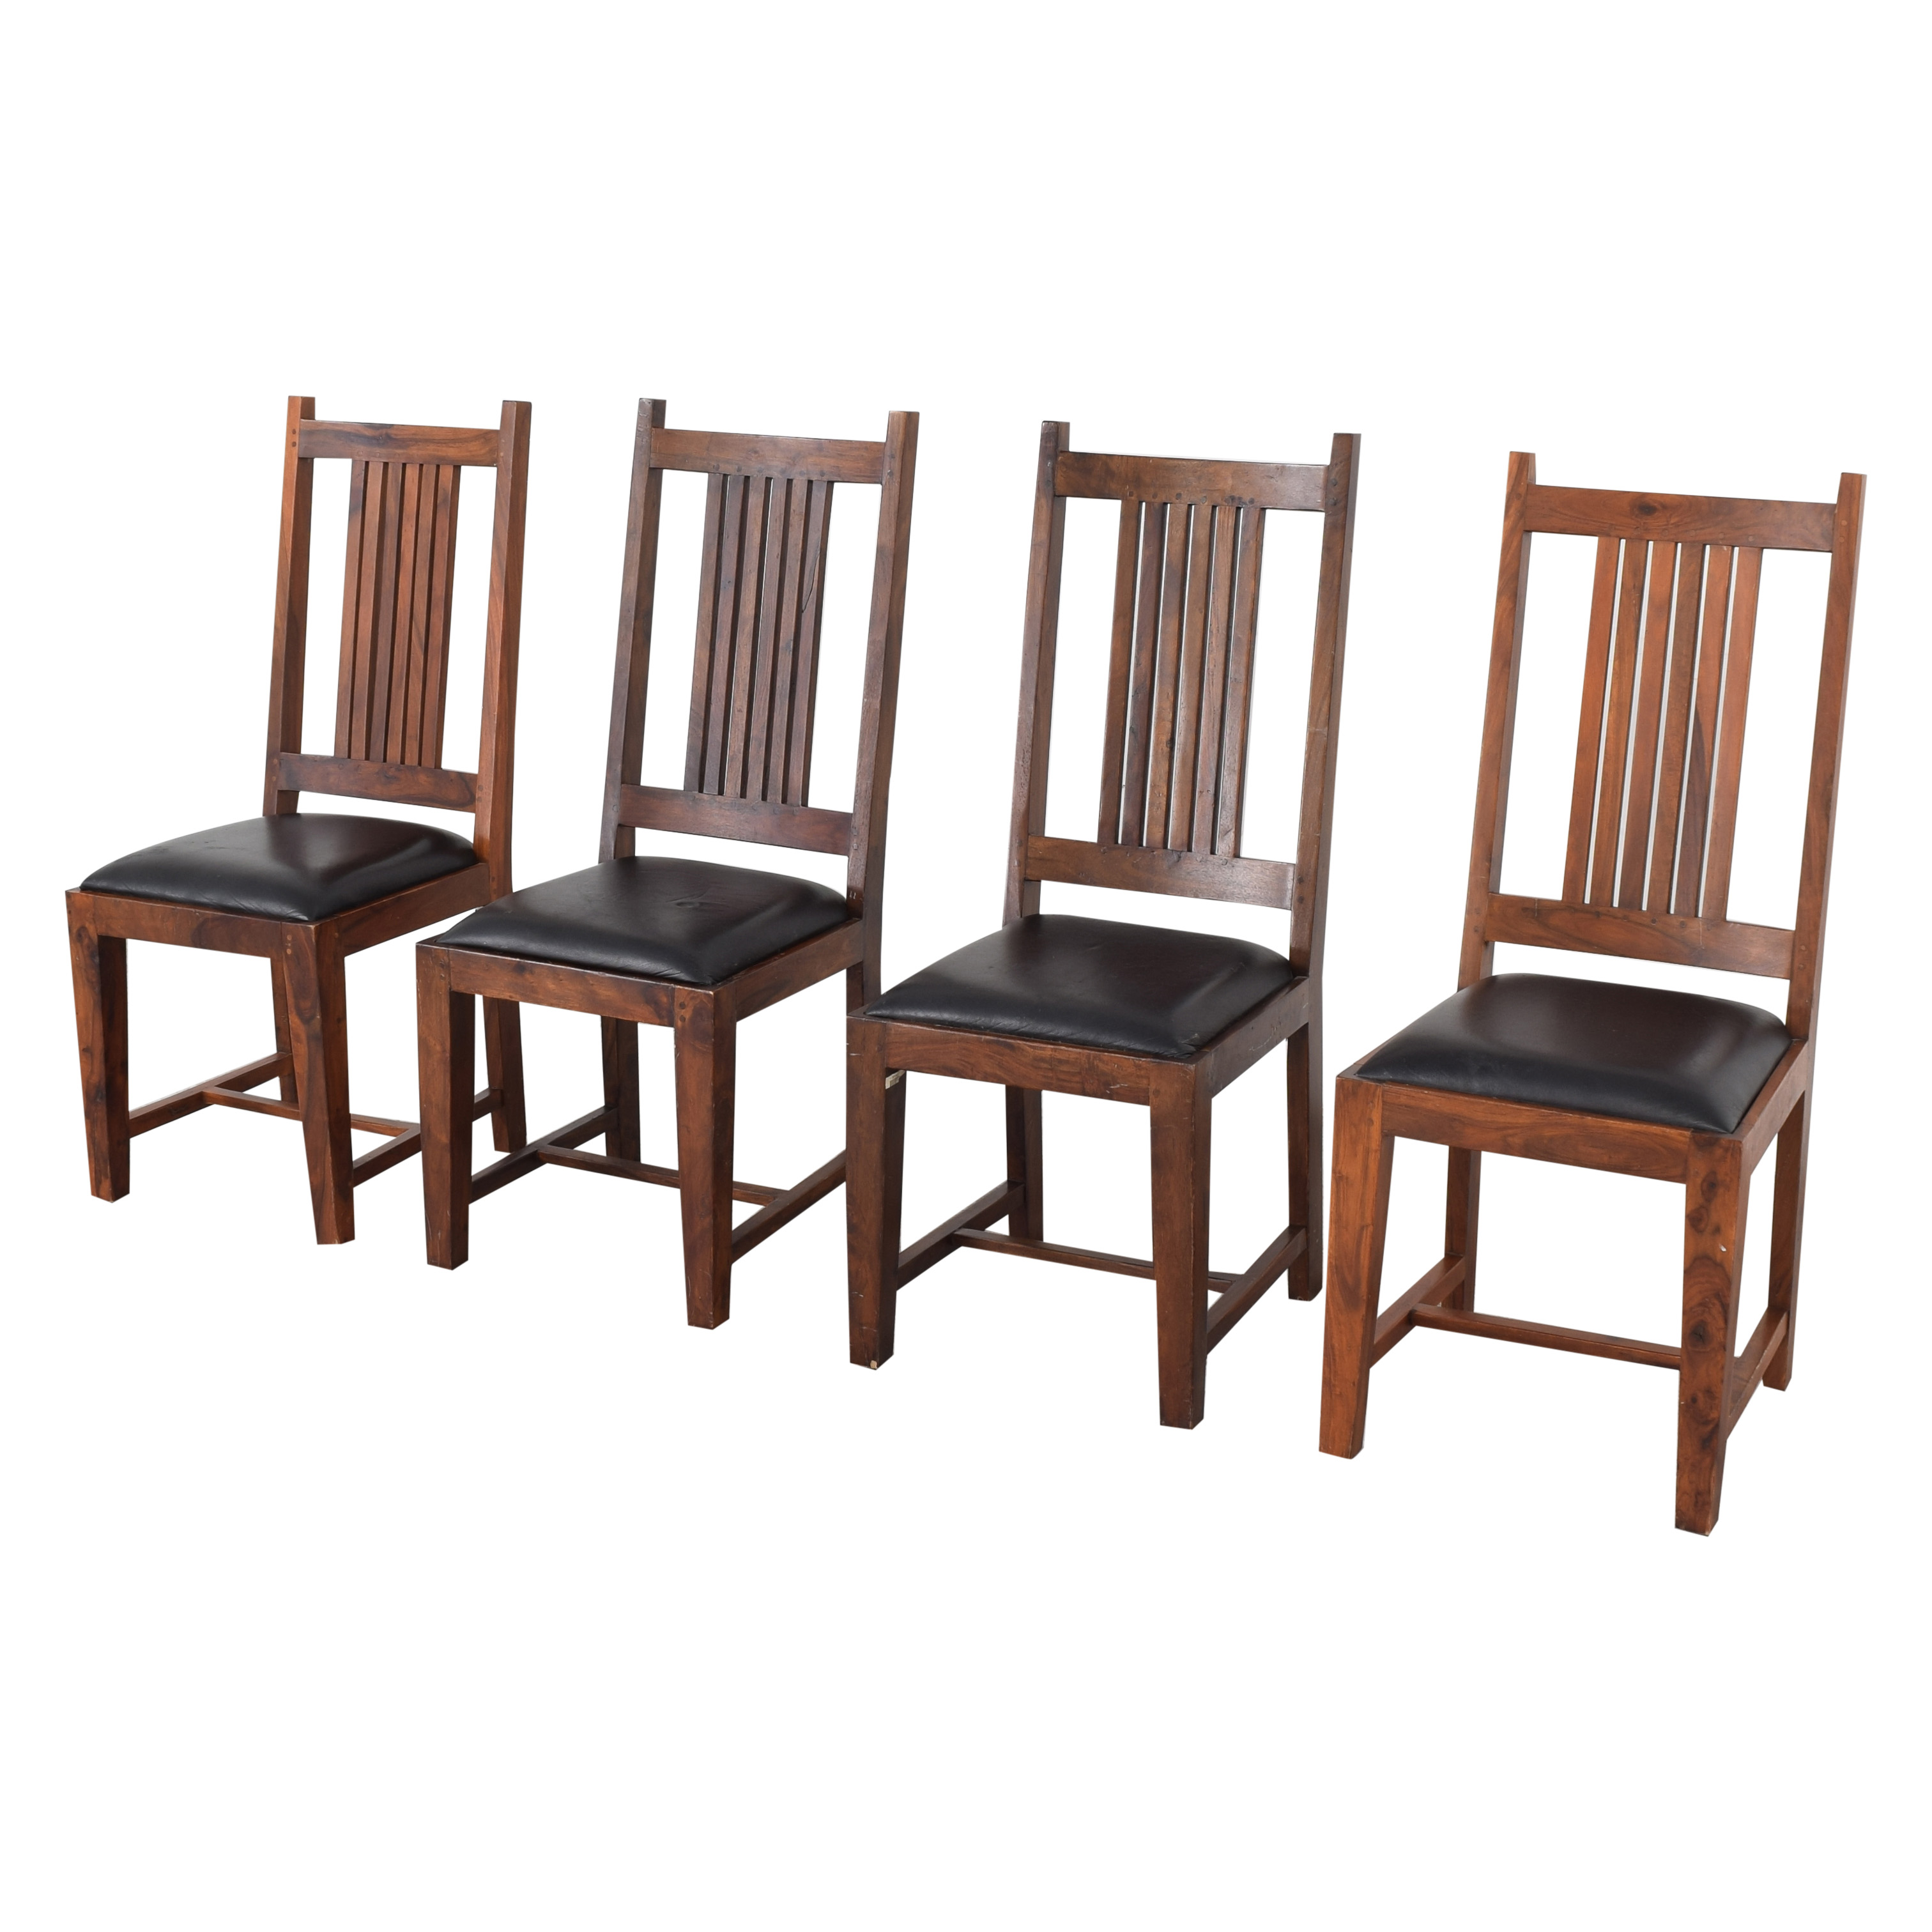 shop ABC Carpet & Home Dining Chairs ABC Carpet & Home Dining Chairs